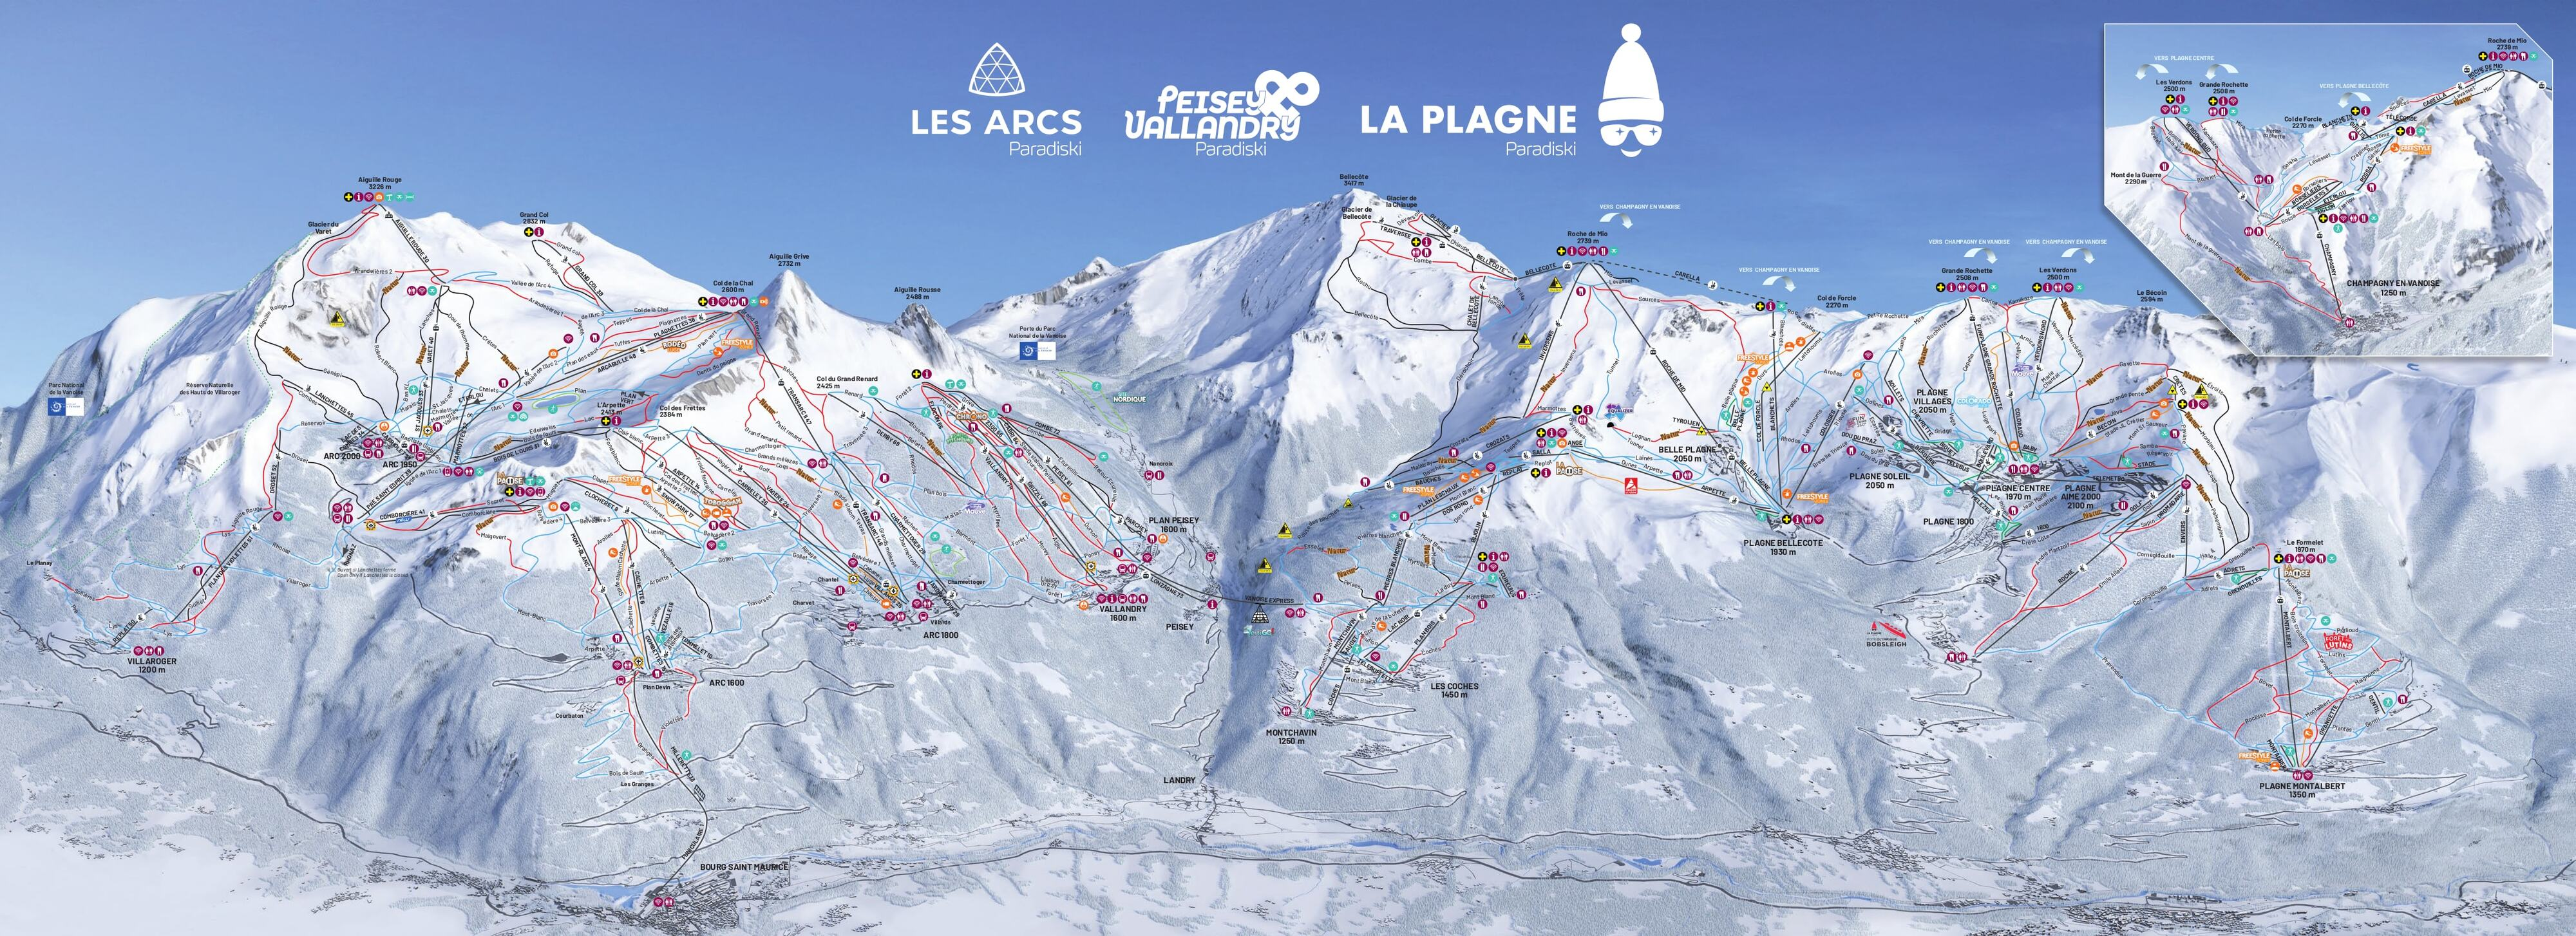 Peisey/Vallandry Piste / Trail Map